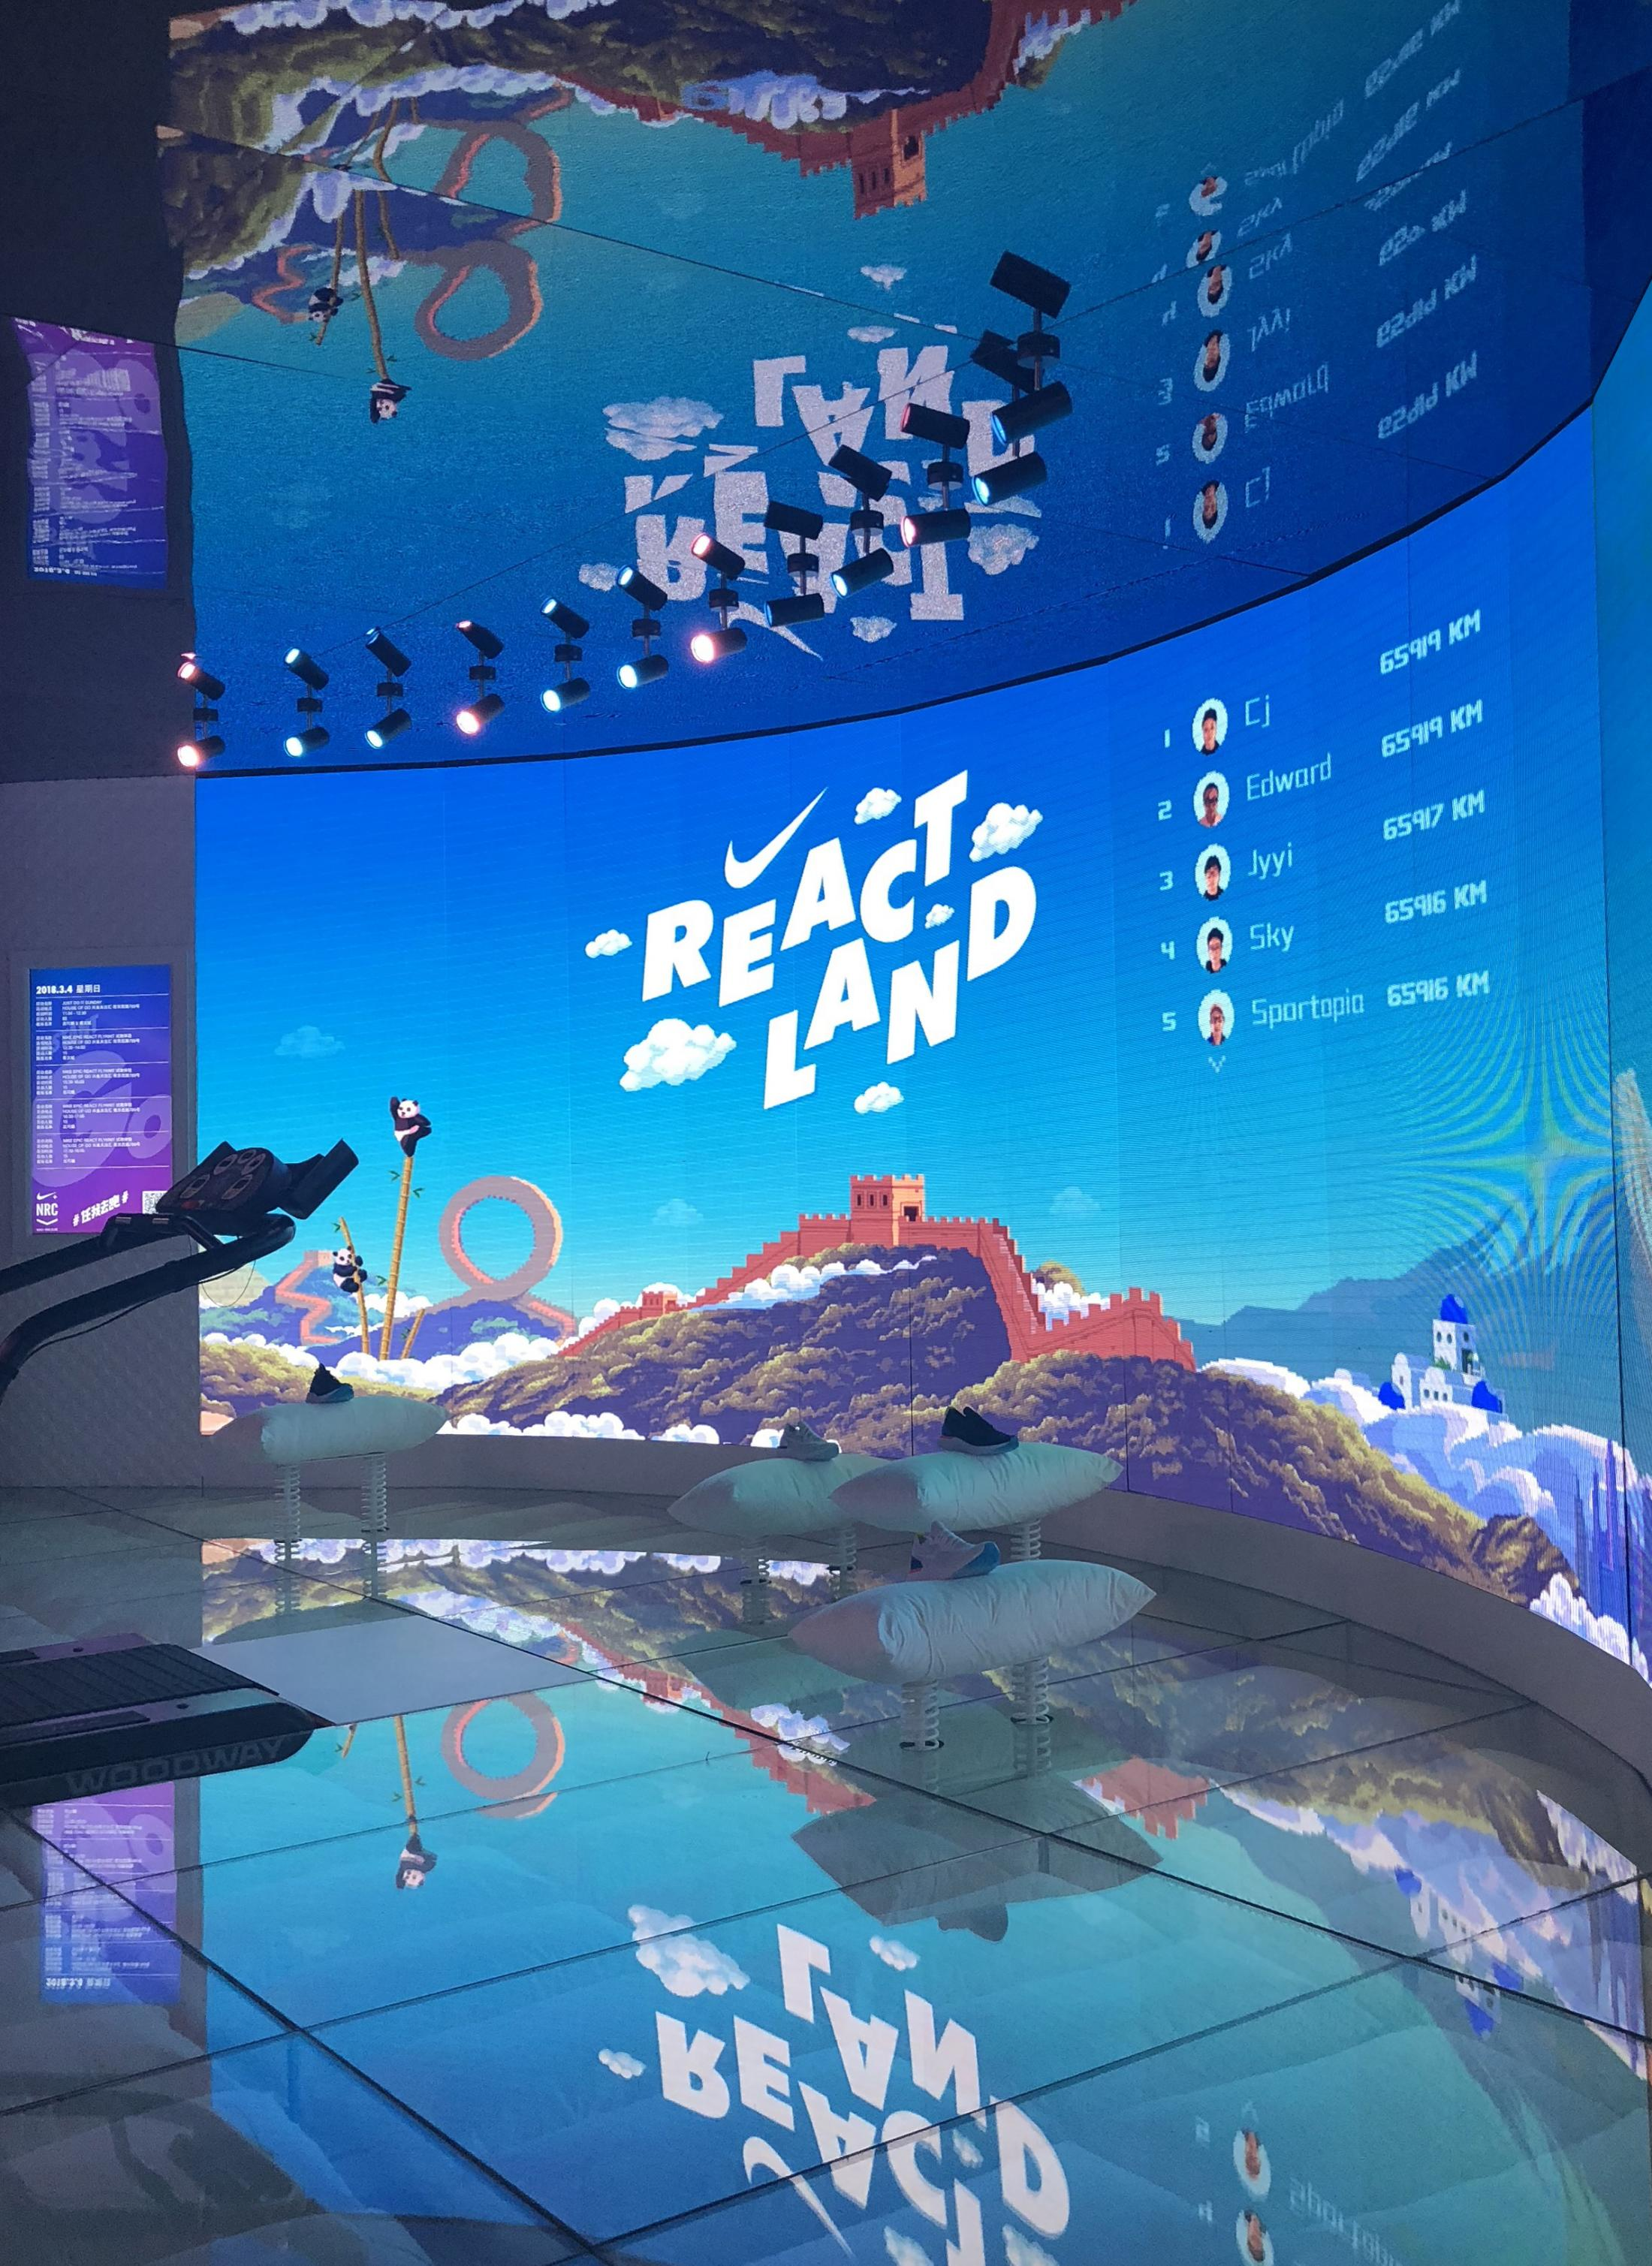 Nike Experiential Ad - Reactland